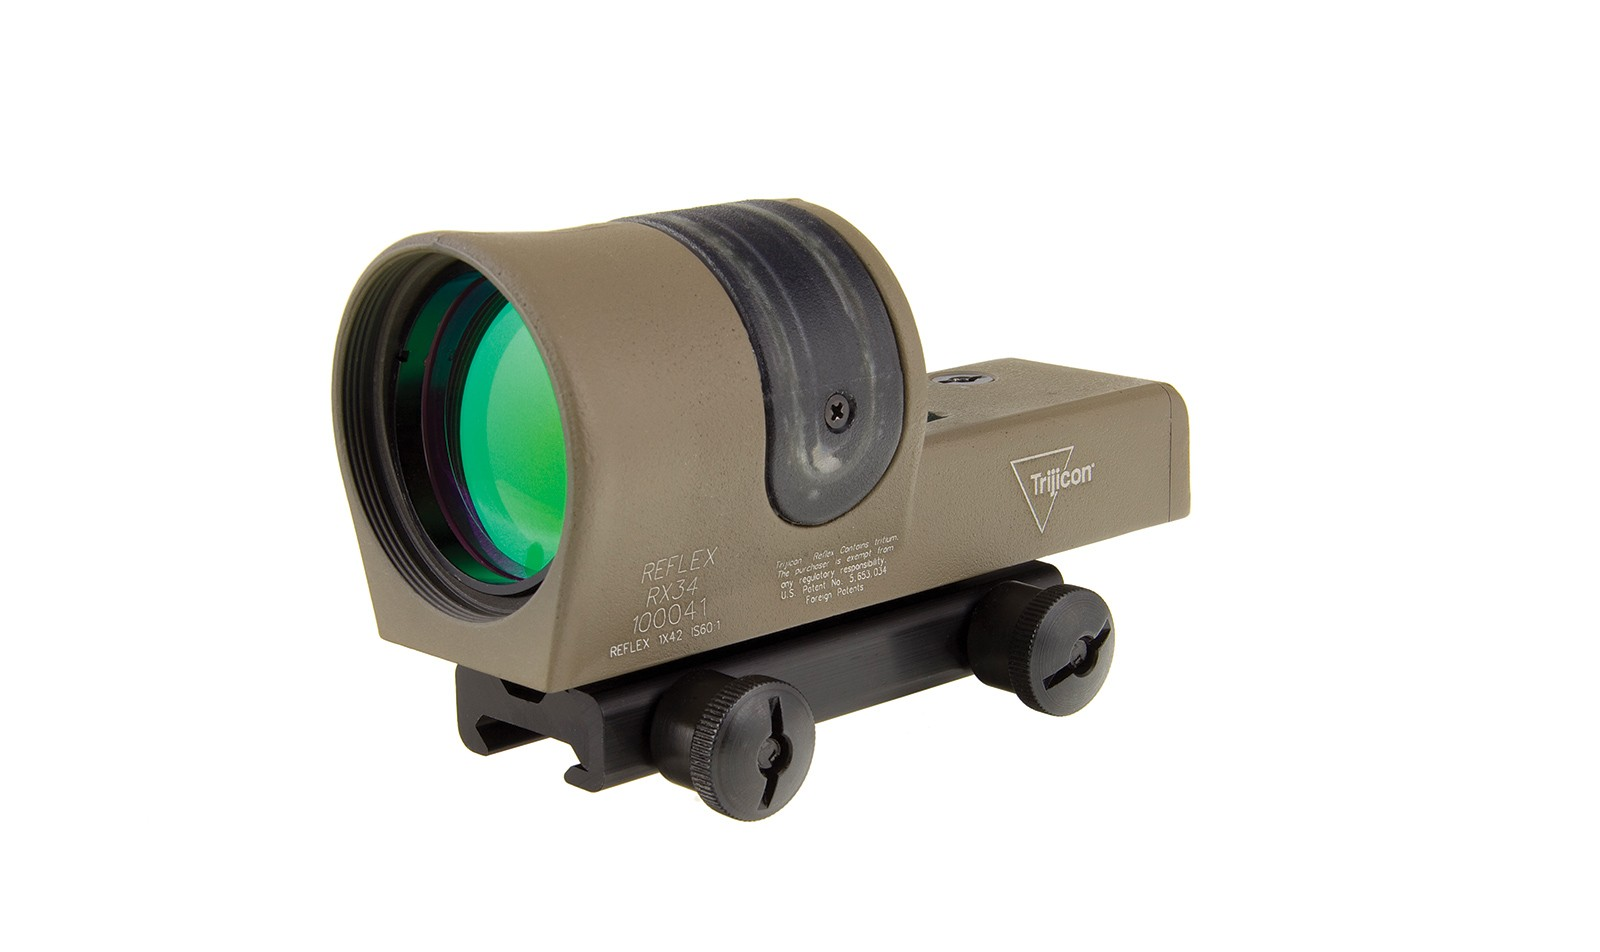 Trijicon<sup>®</sup> Reflex 1x42 Dual Illuminated Sight - FDE